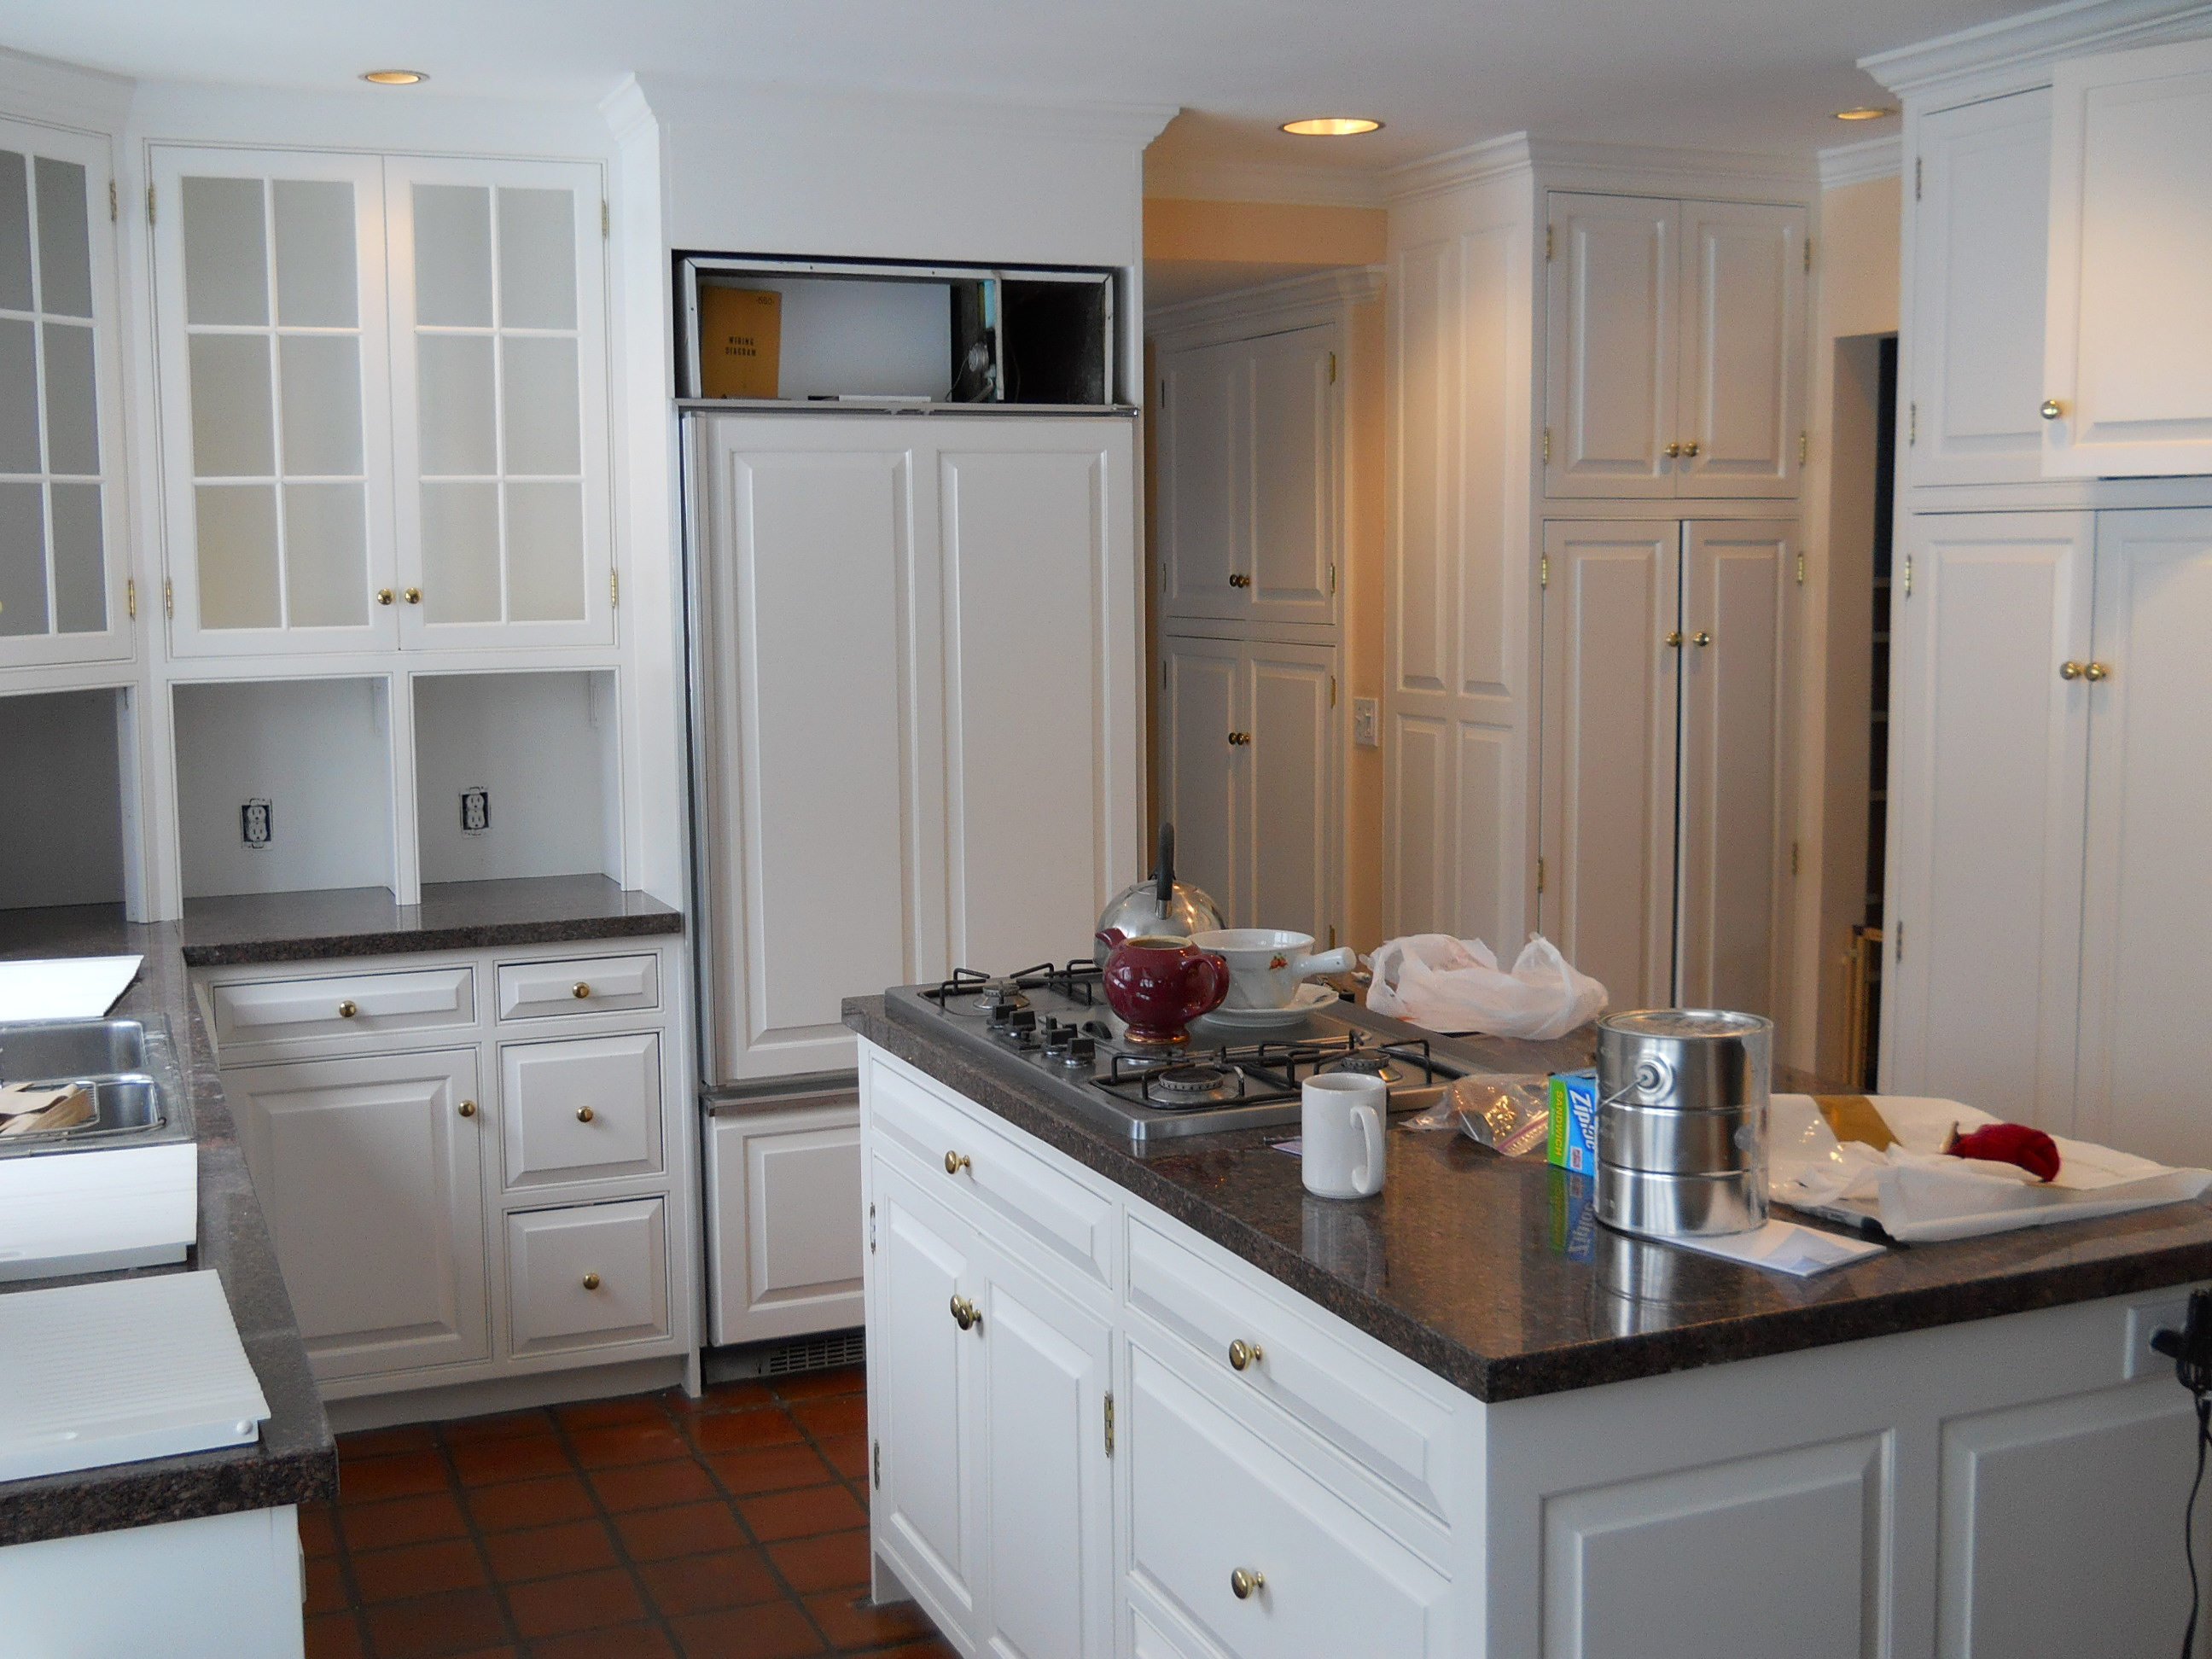 Painting Kitchen Cabinets White in Denver, CO by Eco Paint, Inc